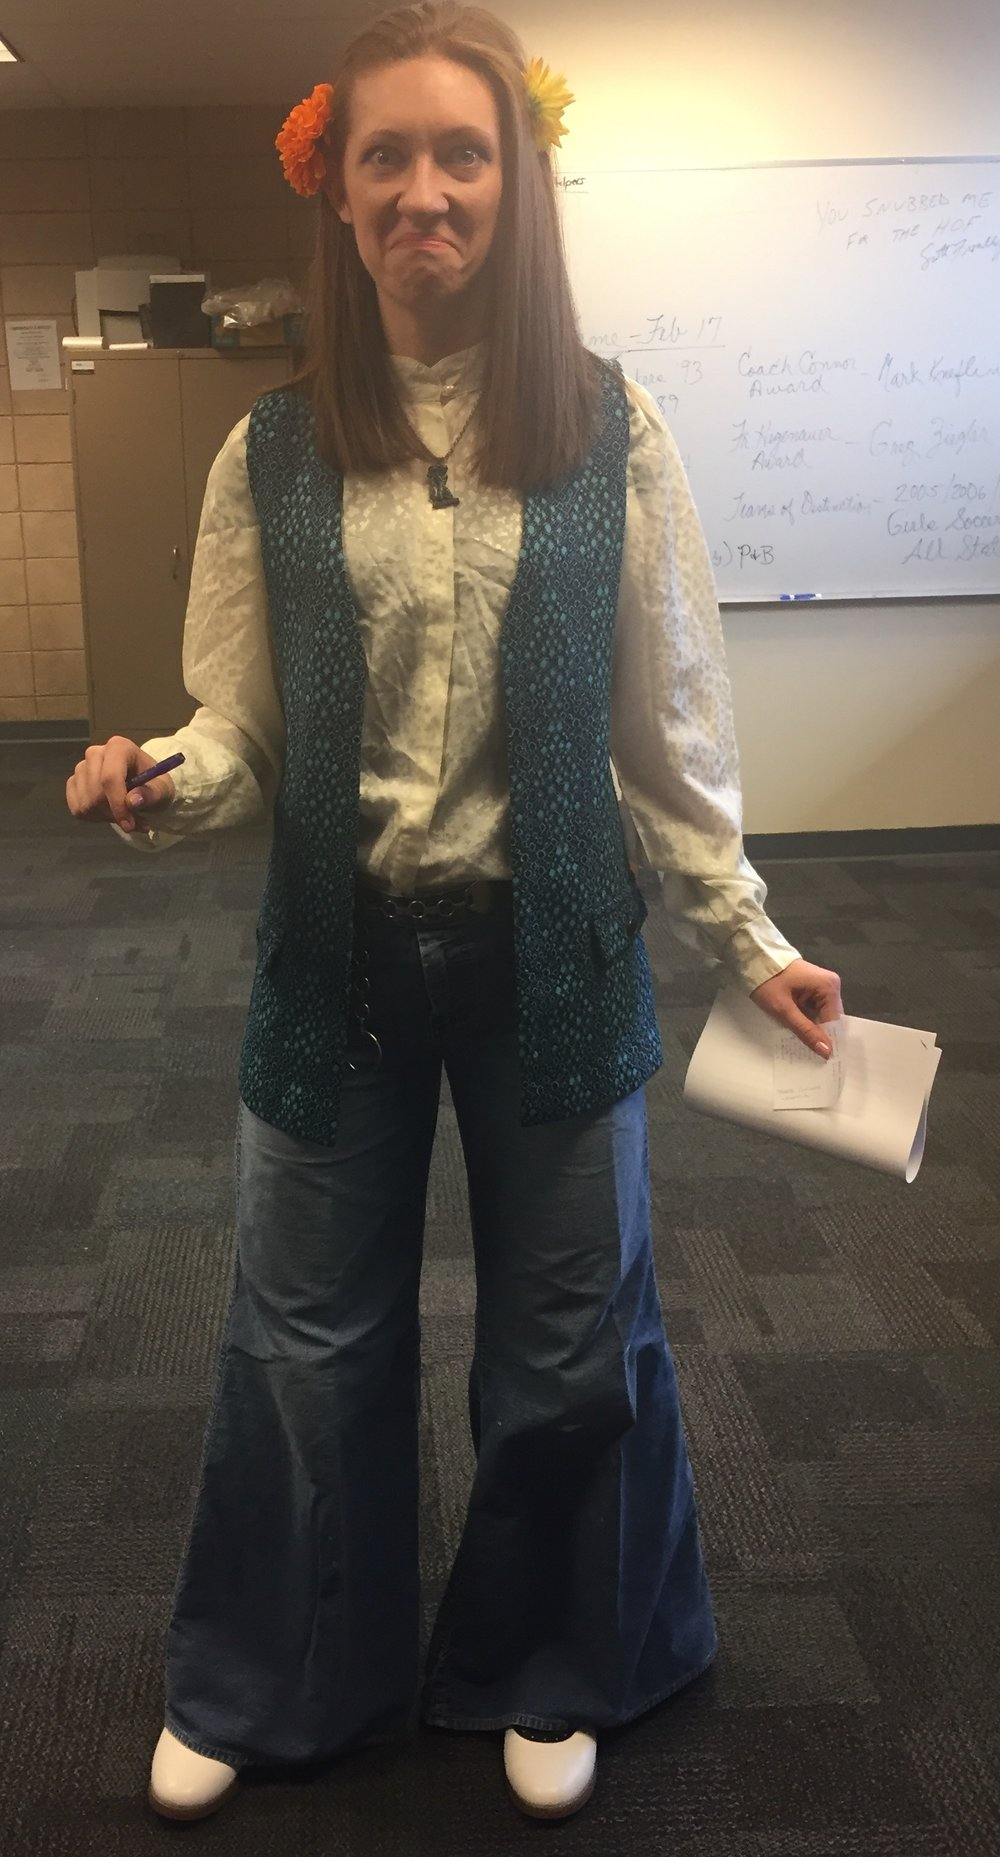 Ms. Katrina Hlebiczki, a 2012  NCC graduate and 1st year Mathematics Teacher at NCC dresses up according to the day's theme during Catholic School's Week.